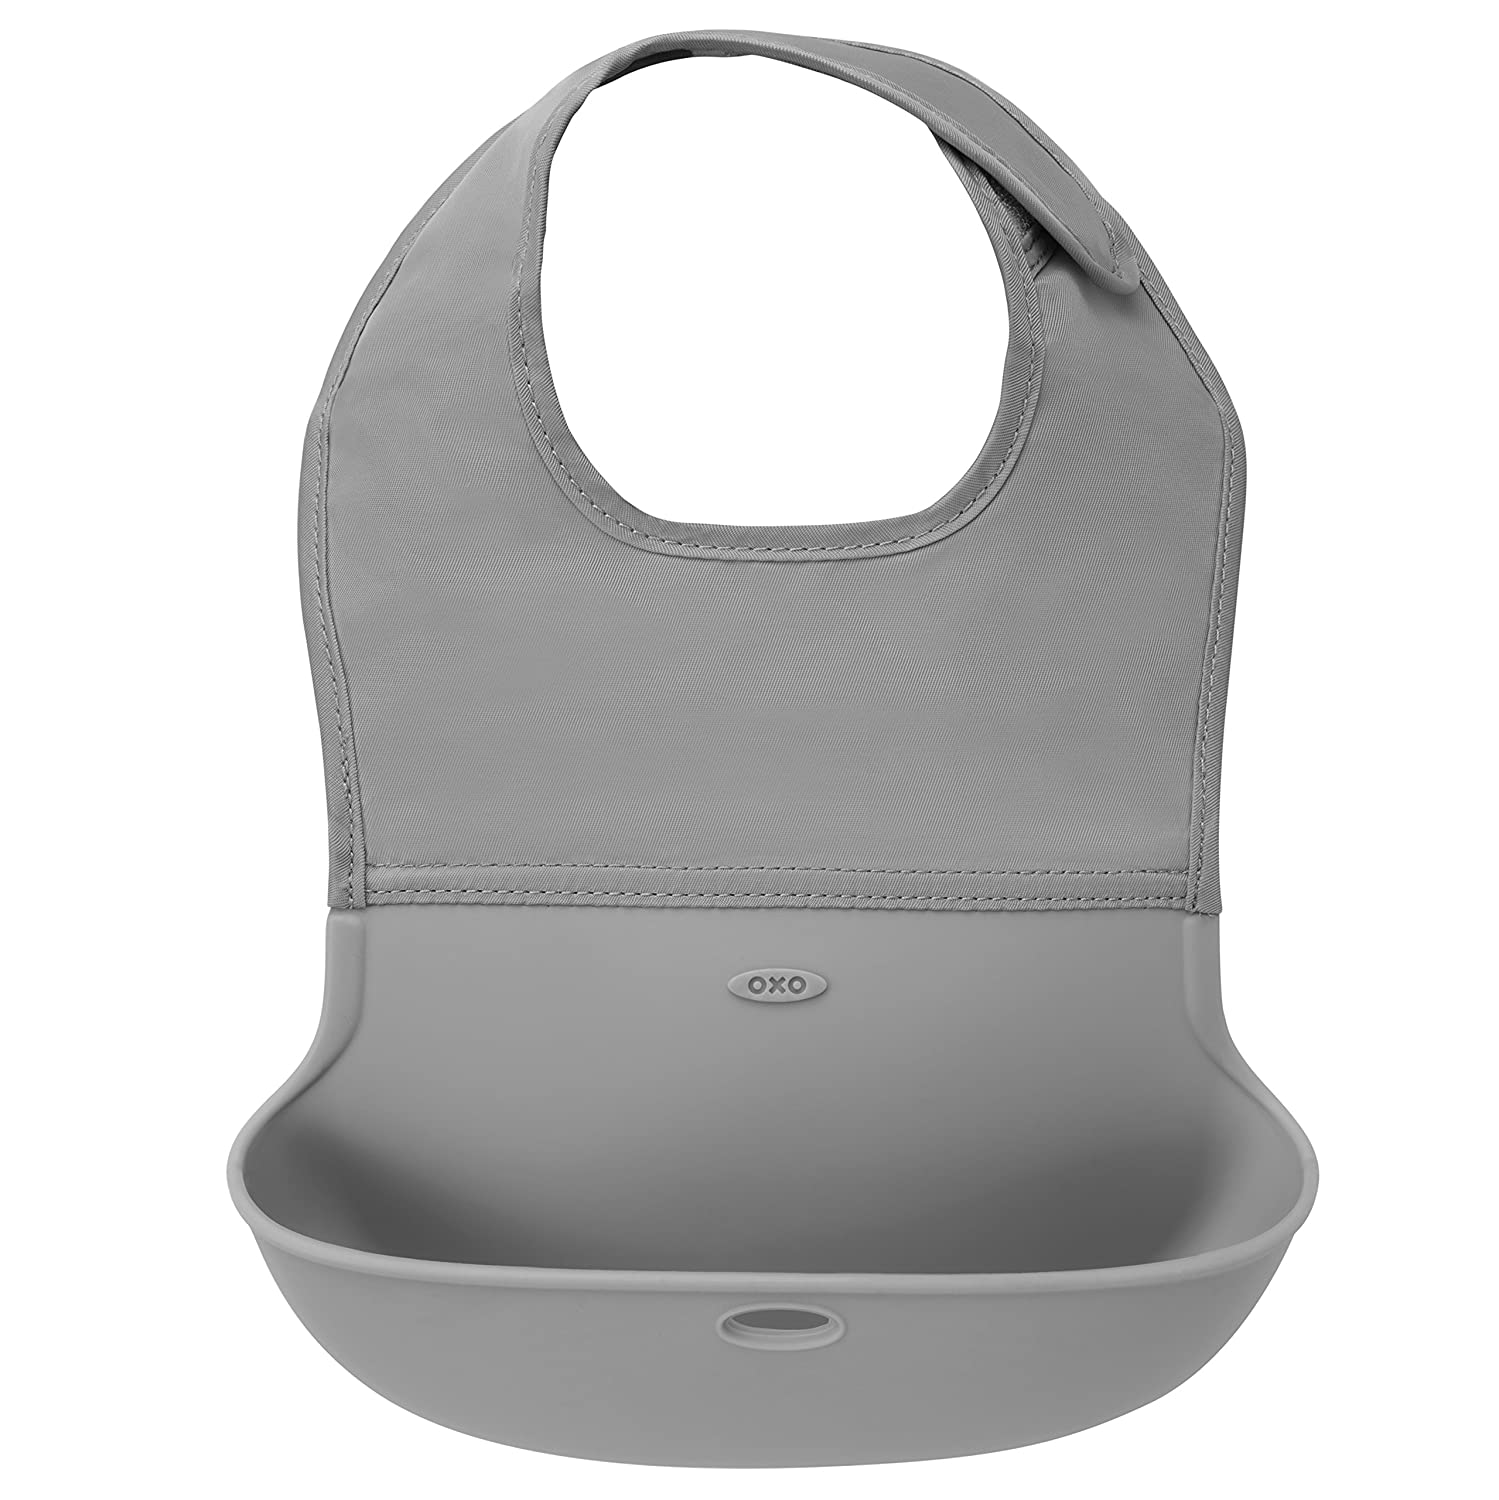 OXO Tot Waterproof Silicone Roll Up Bib with Comfort-Fit Fabric Neck Gray//Pink 2 Pack